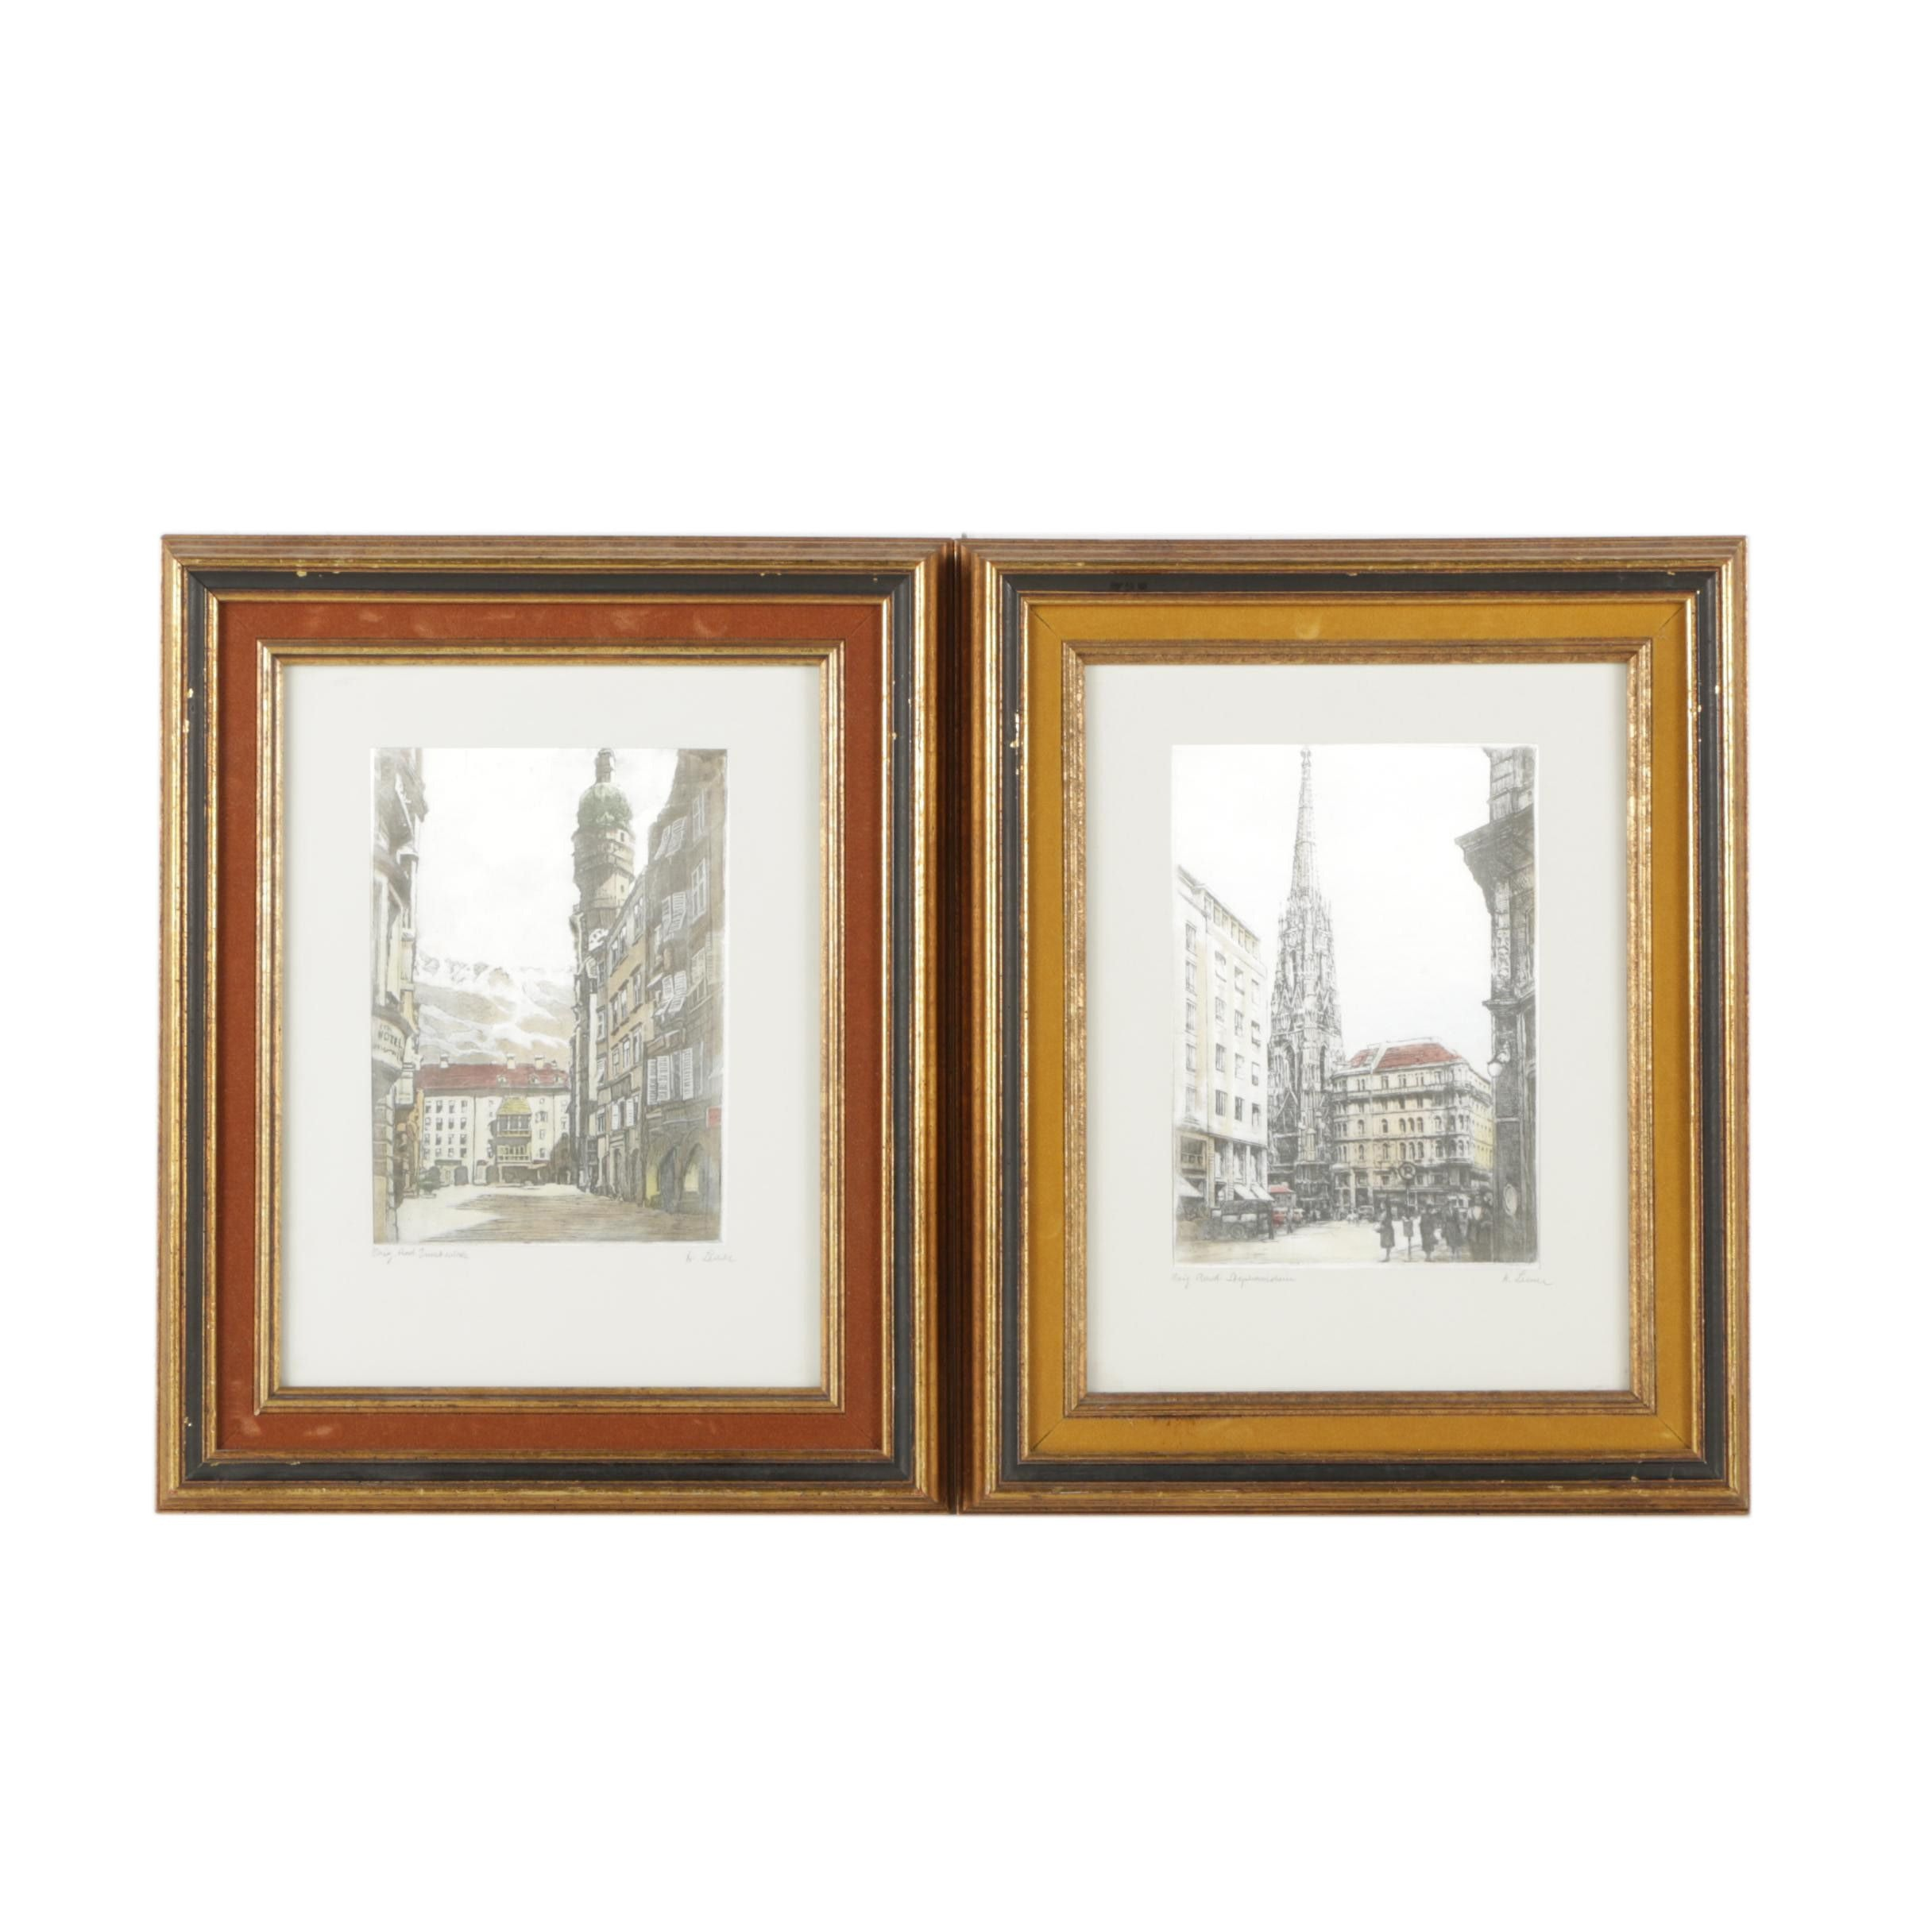 Etchings of Street Views on Fabric